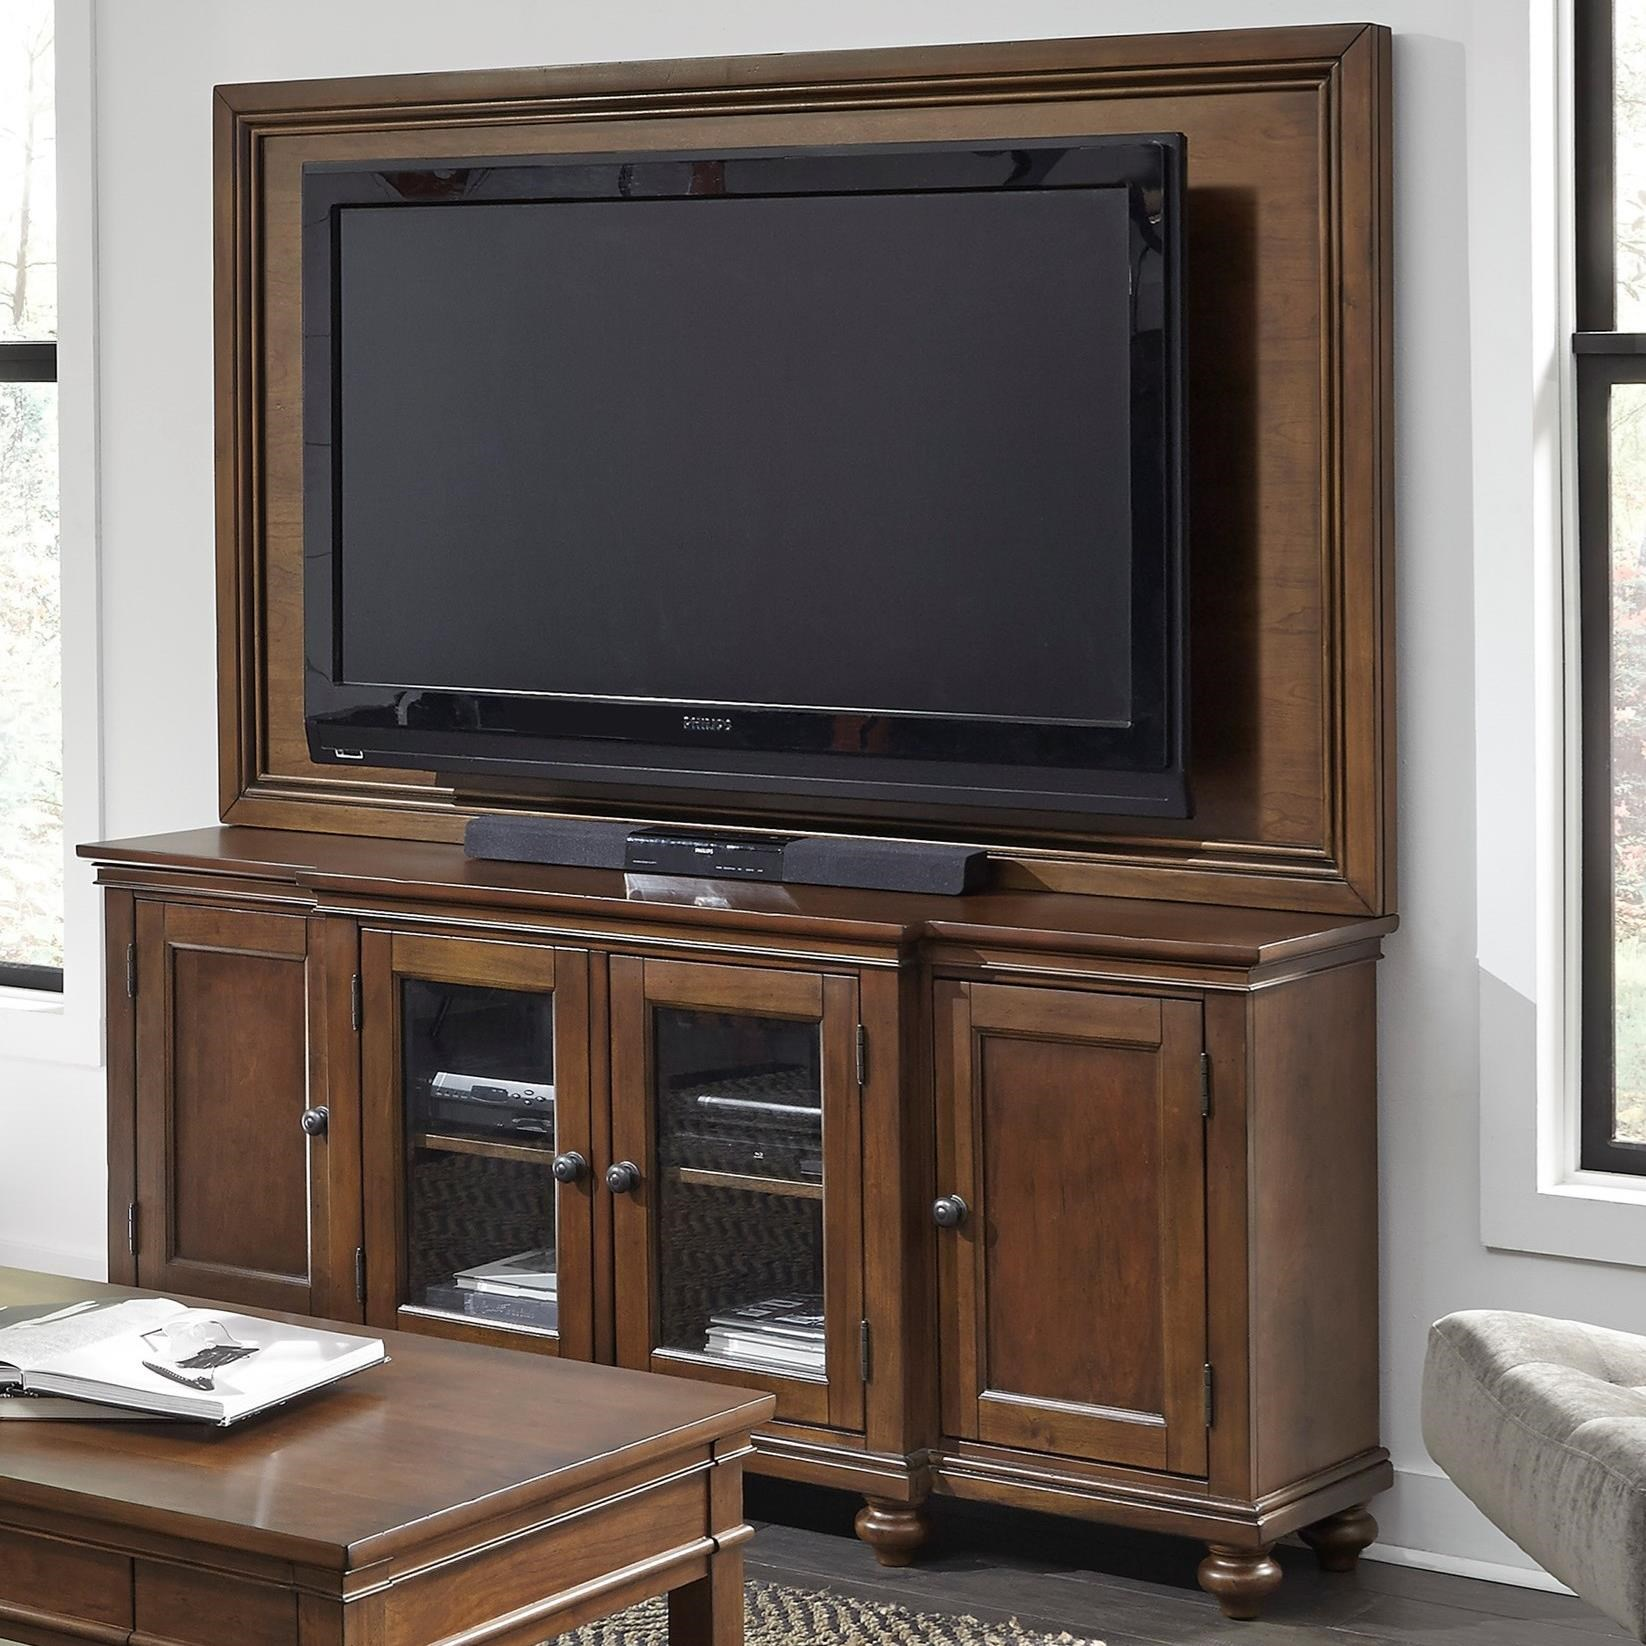 "Oxford 75"" Media Console and TV Backer by Aspenhome at Baer's Furniture"